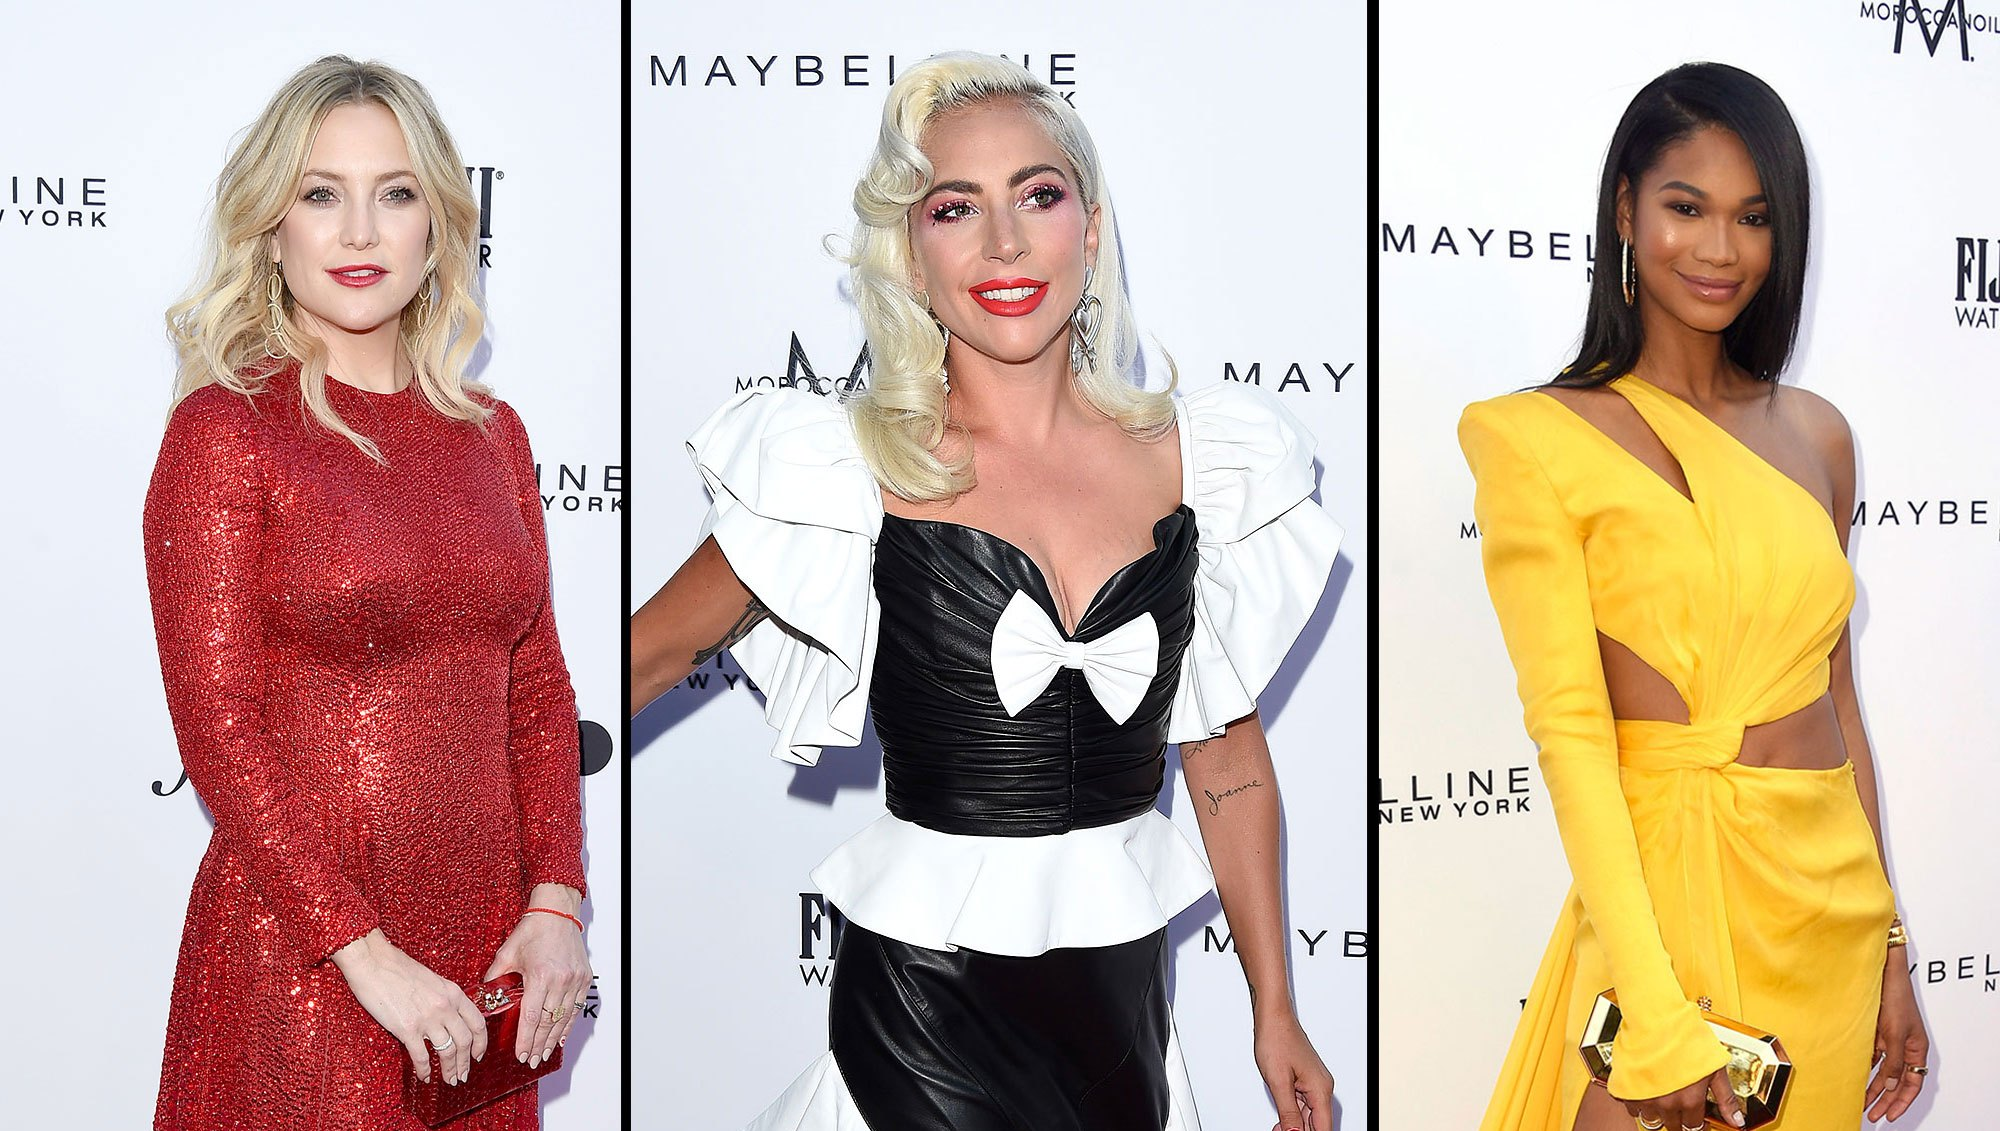 Stars Brought Their Style A-Game to the Daily Front Row Fashion Awards